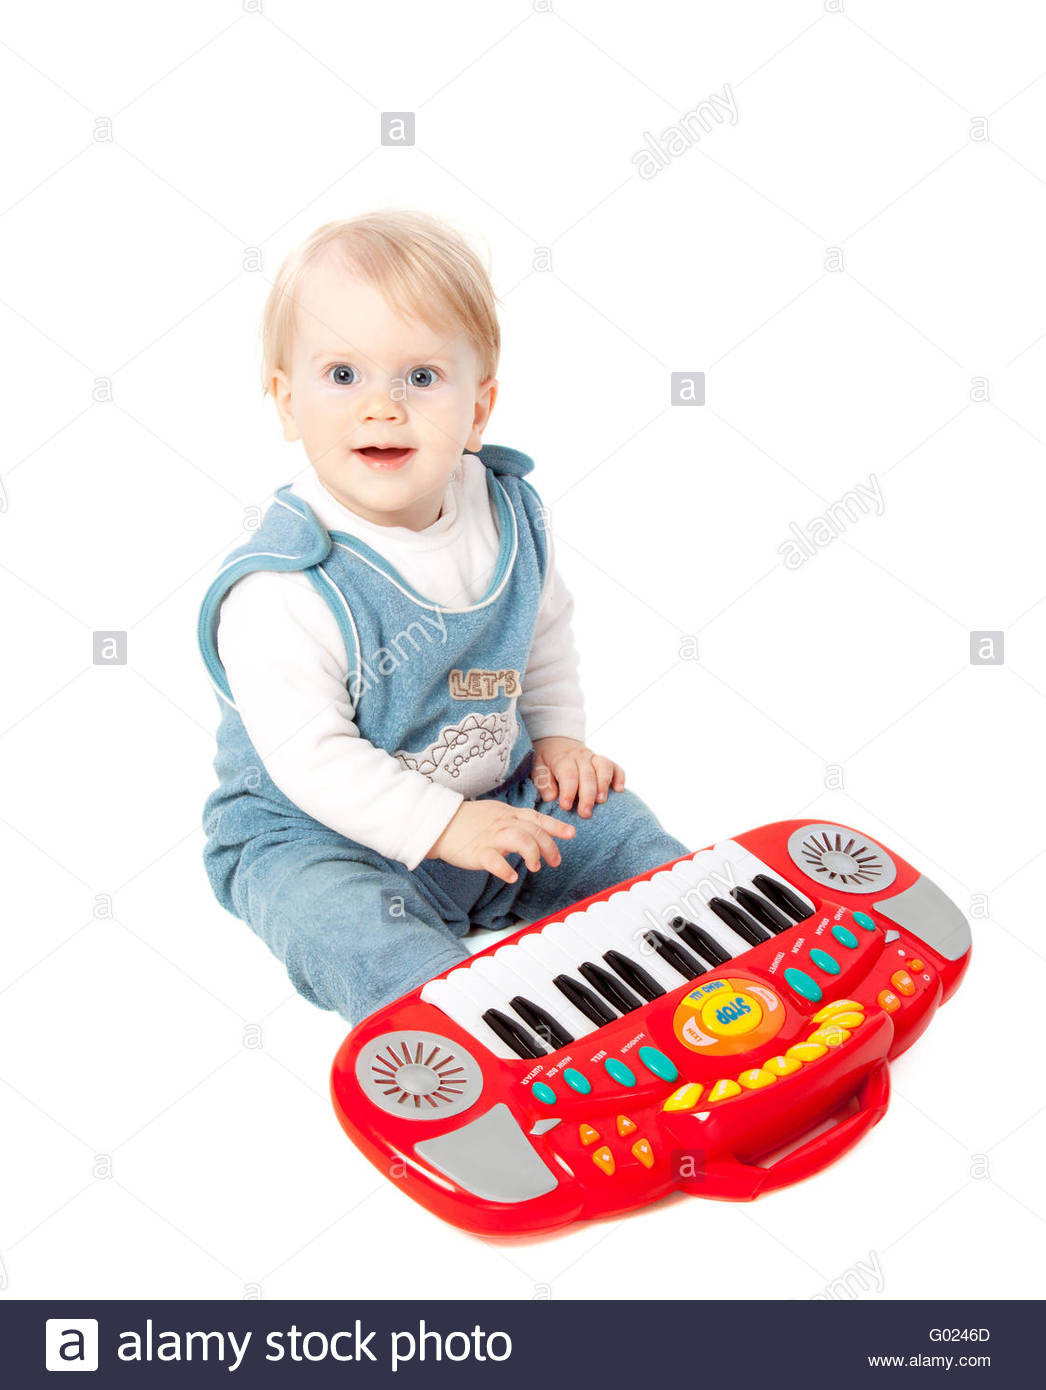 pretty little baby girl pianist plays on a toy piano synthesizer isolated on white - Stock Image